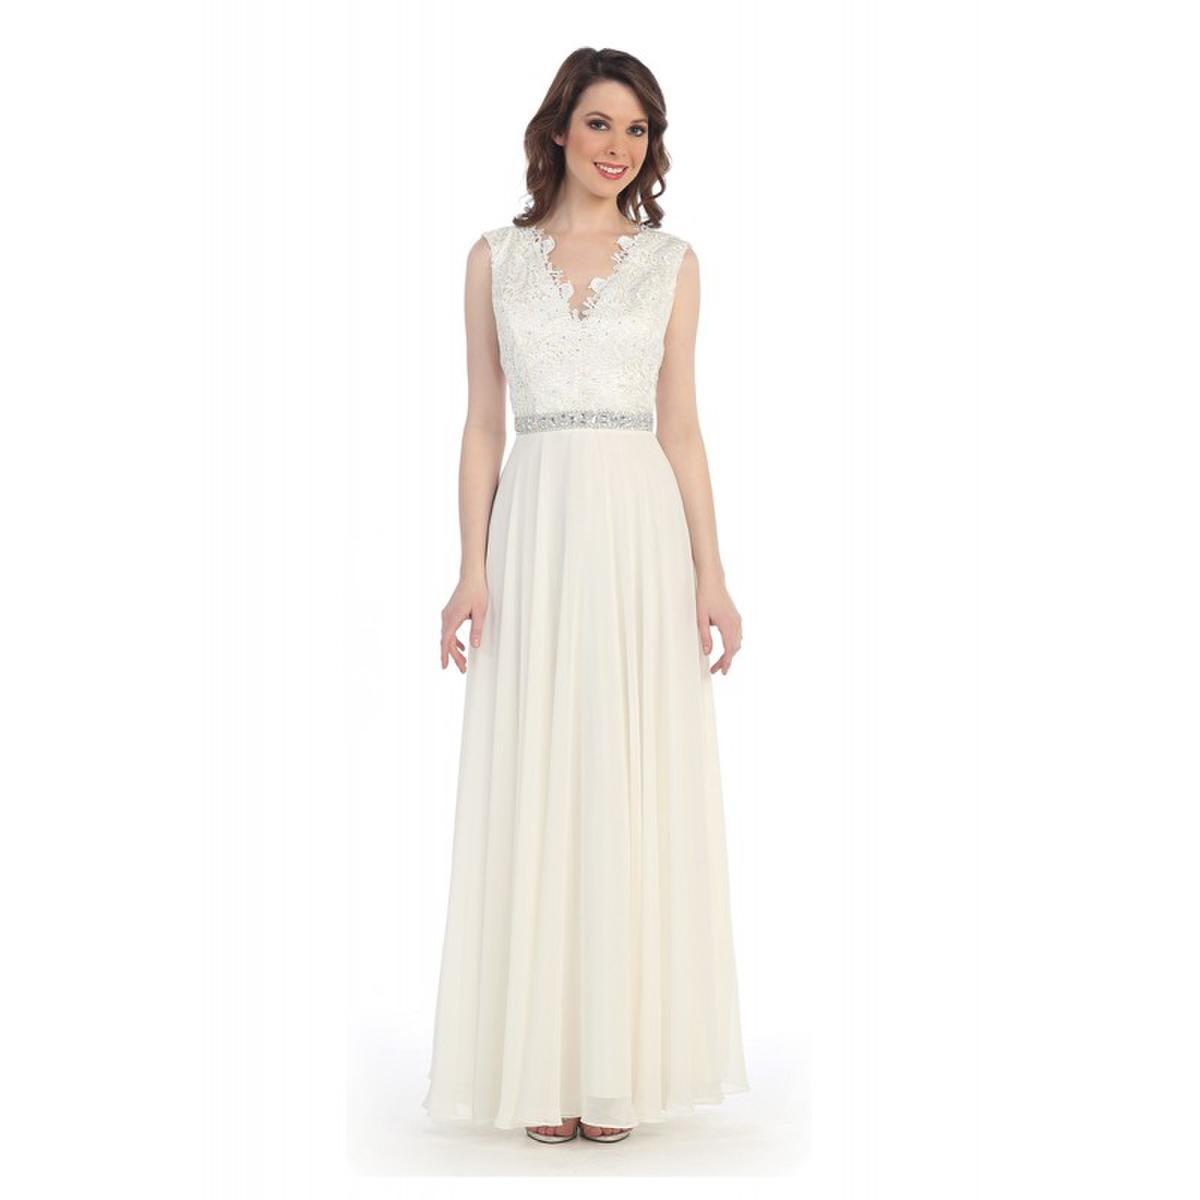 Beaded Waist Lace Bodice Gown